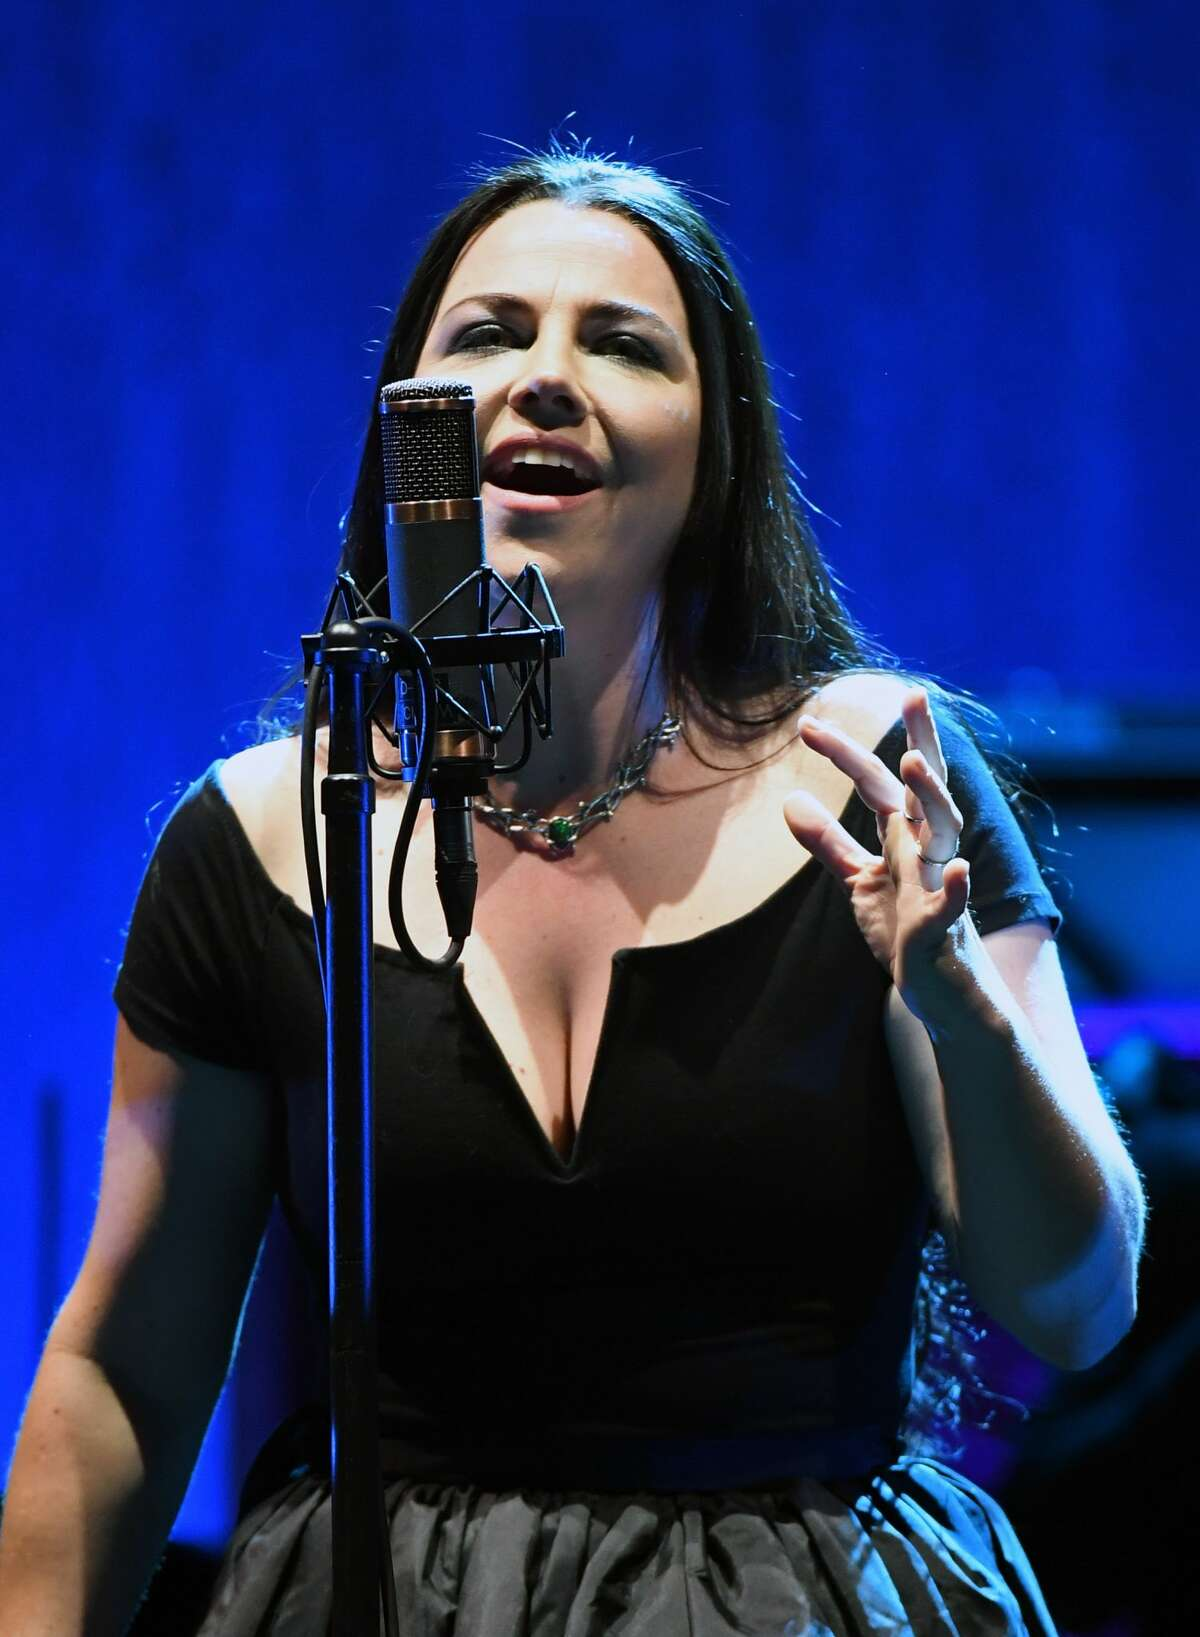 Evanescence:The band will be performing at Revention Music Center on Friday, Oct. 20 at 7 p.m. More Details: www.reventionmusiccenter.com